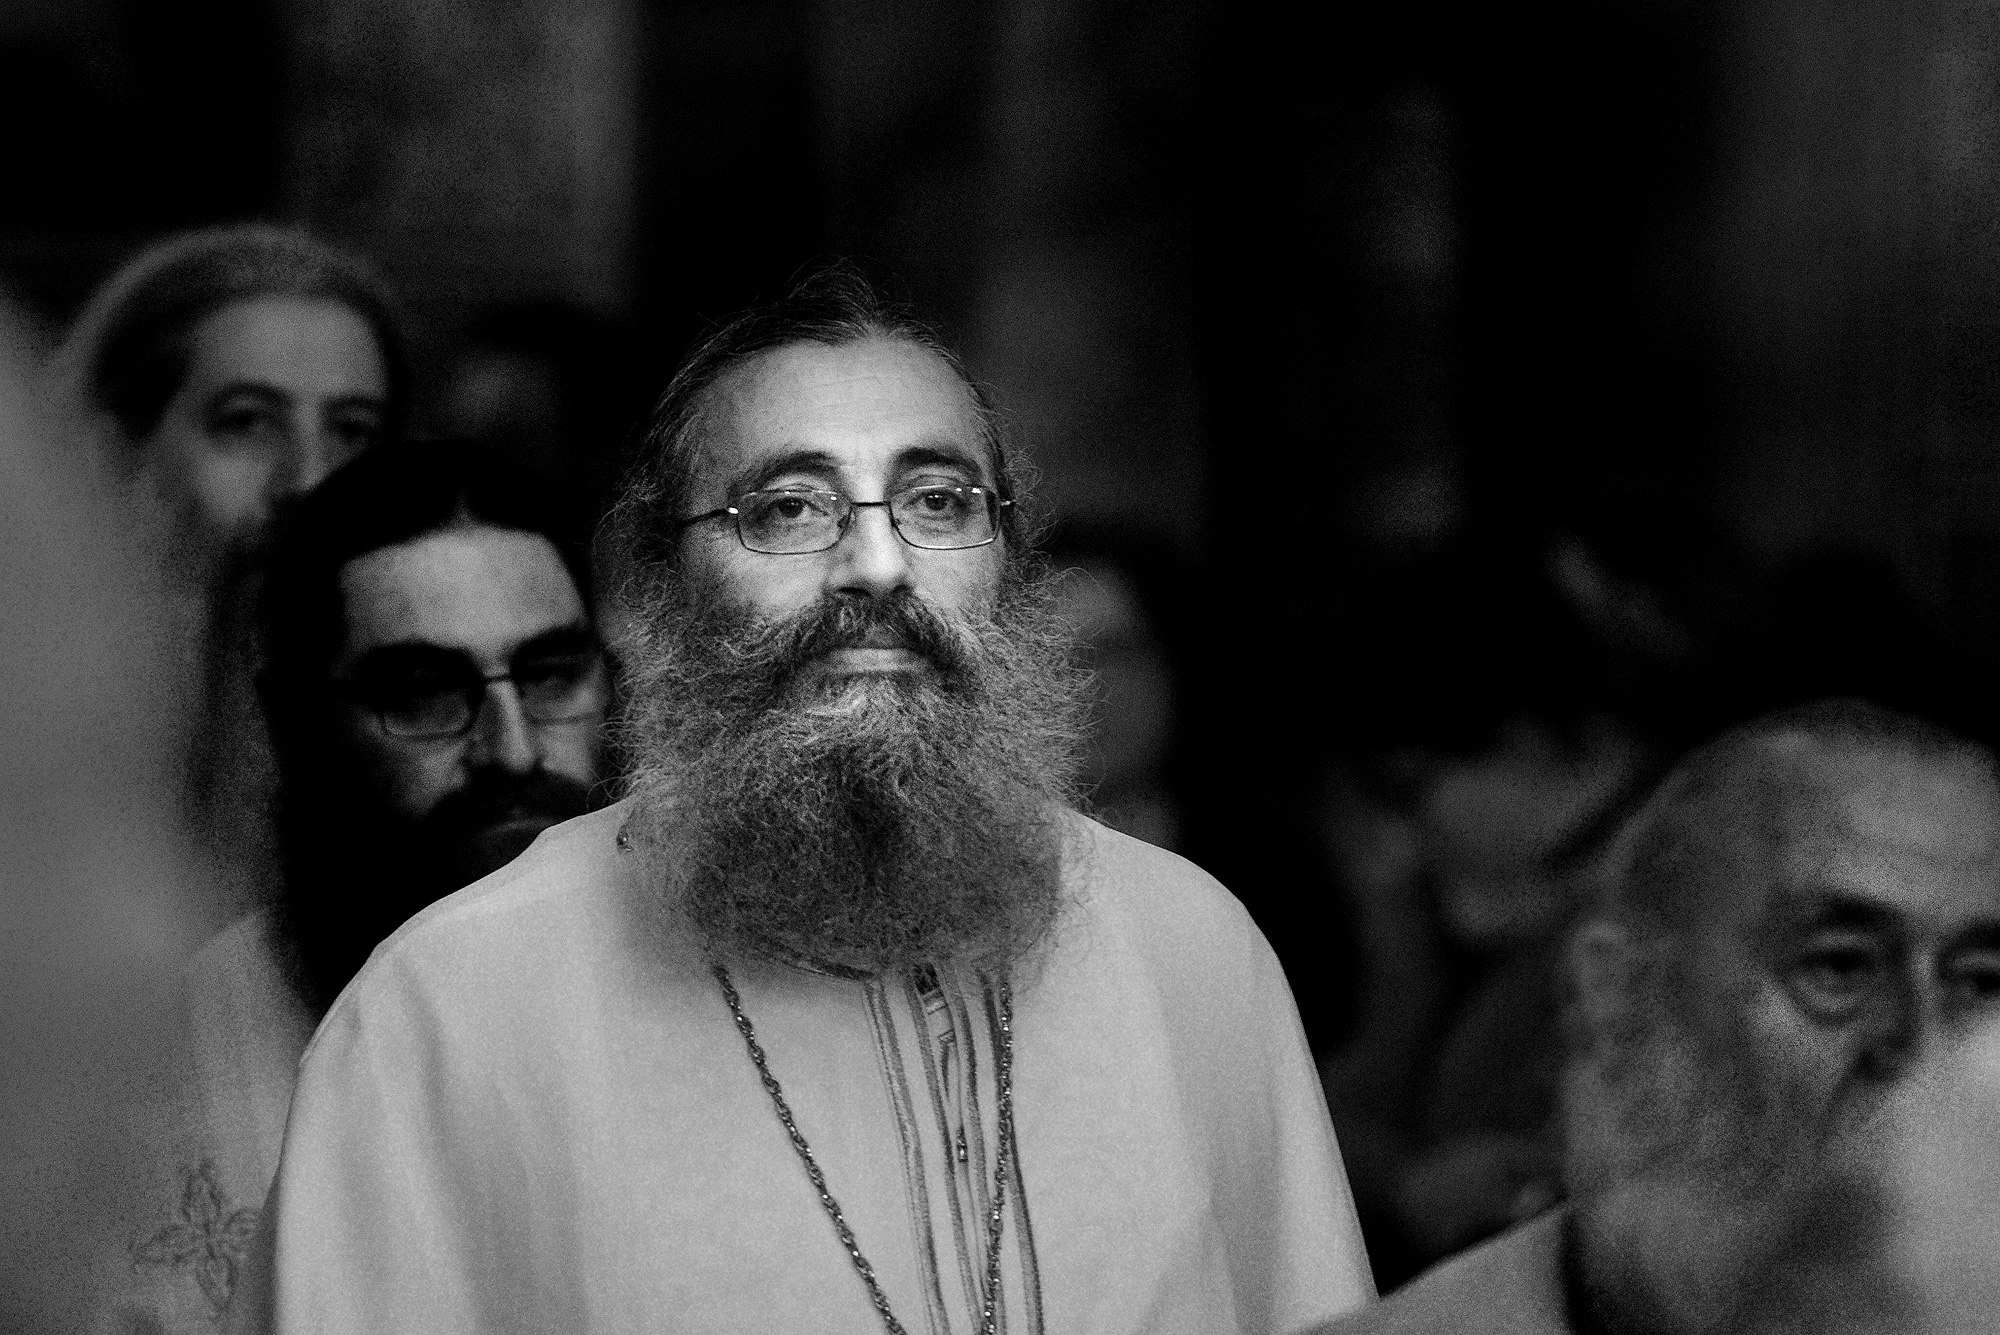 Vesper on nameday of Metropolitan Athanasios of Limassol